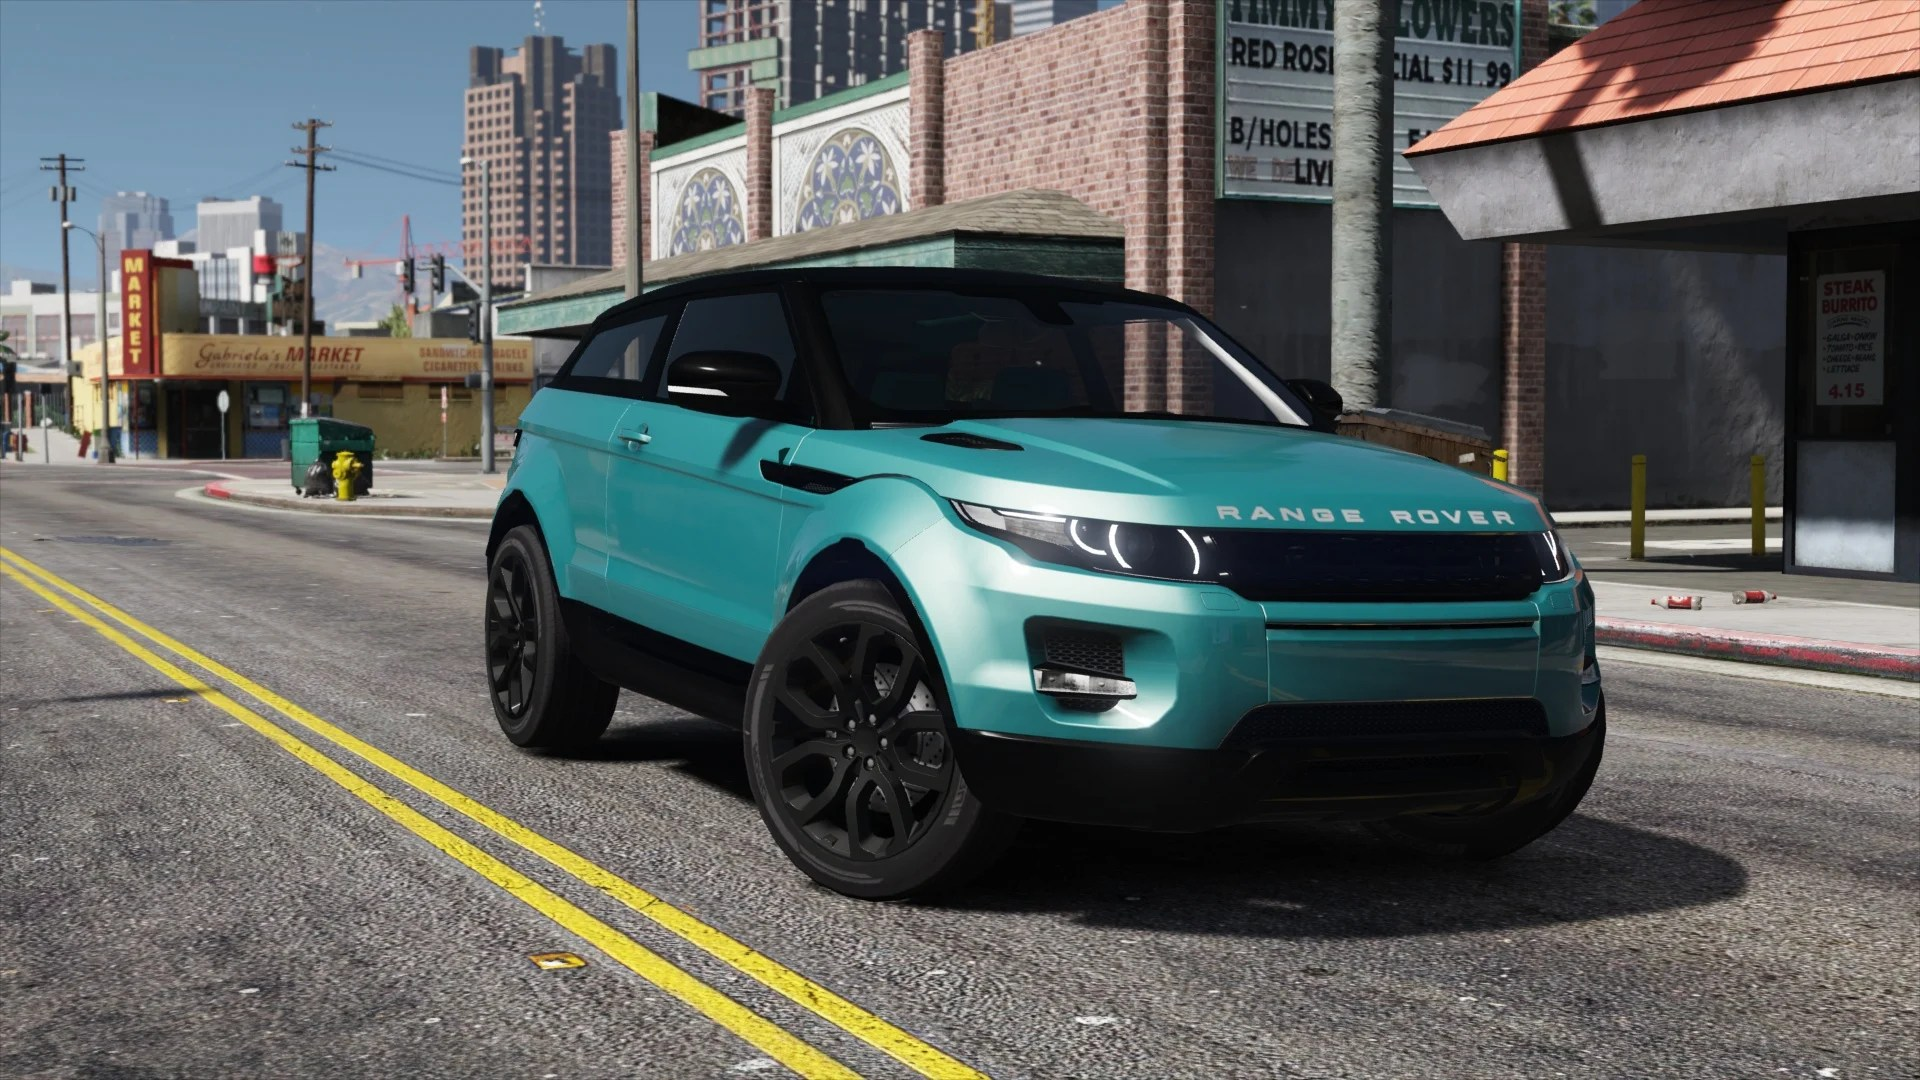 Range Rover Evoque [Add Replace Tuning